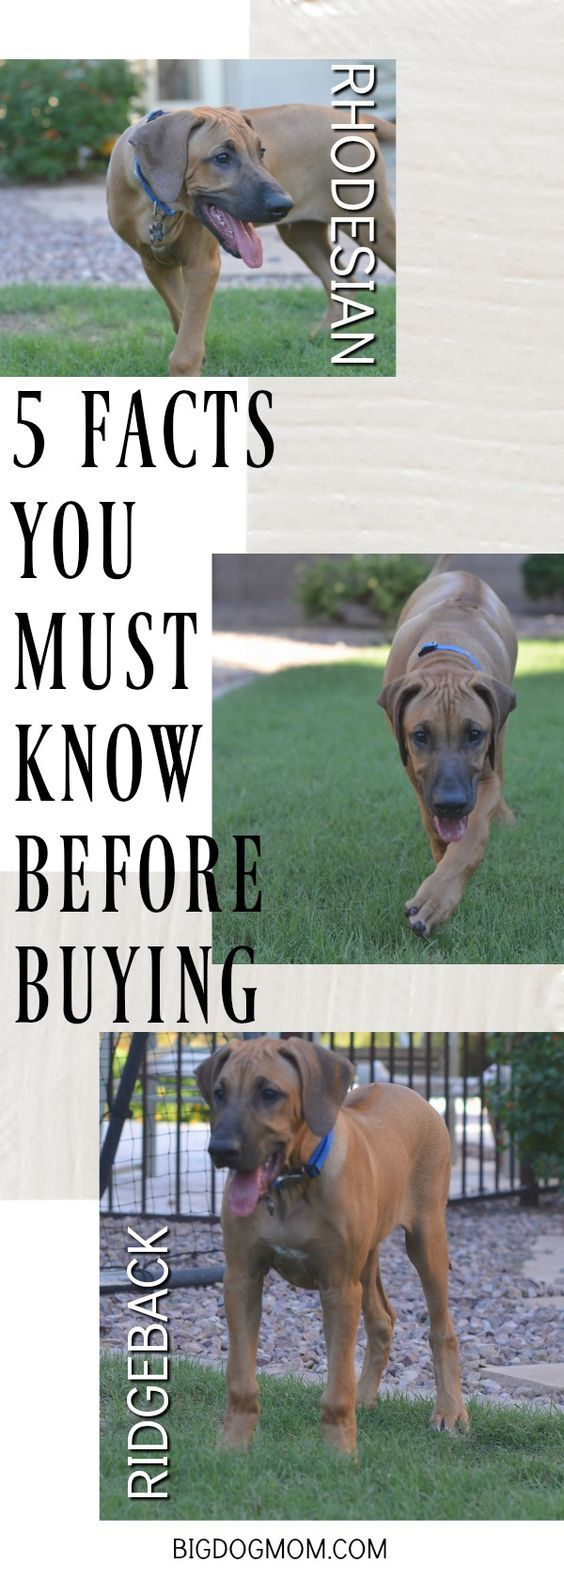 With his superior athleticism and intelligence, one weekend with a Rhodesian Ridgeback puppy taught me 5 facts that anyone considering the breed should know.